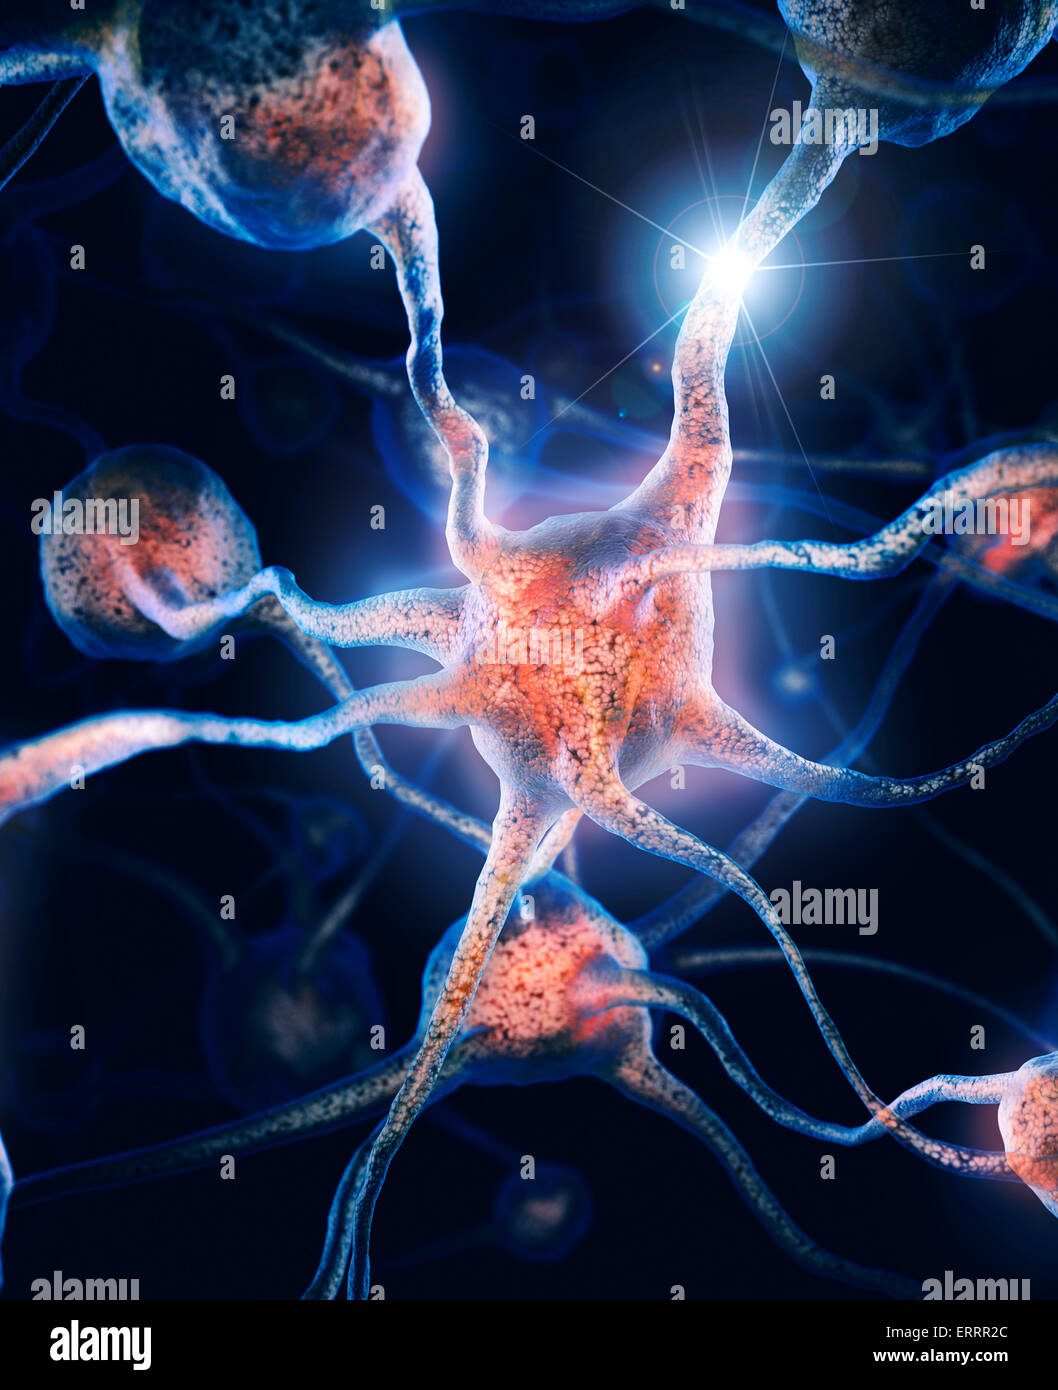 Network of neurons and neural connections, Brain cells, scientific illustration - Stock Image